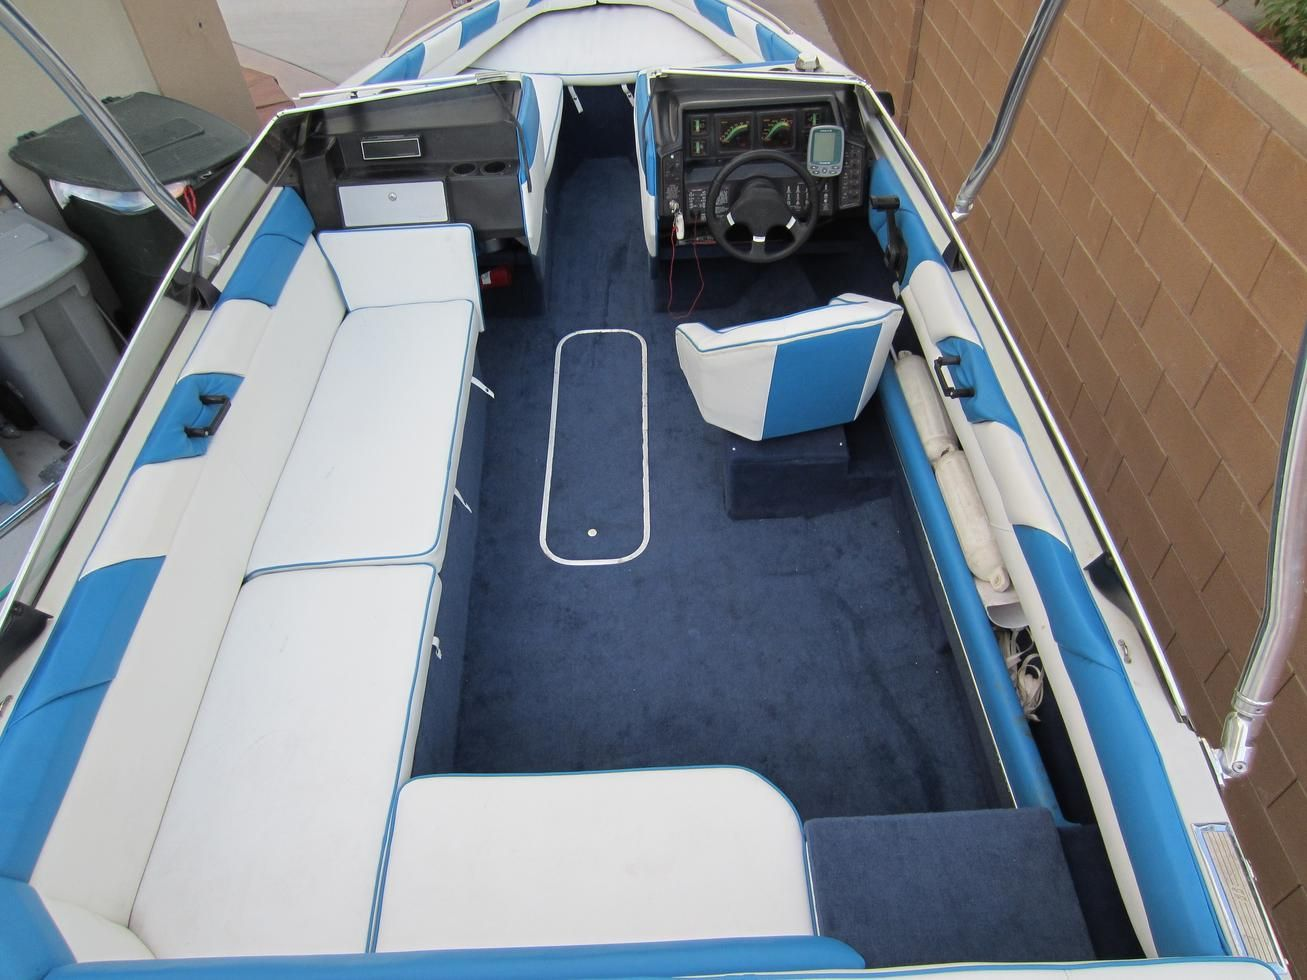 1989 Bayliner Capri With Live Well Pics Google Search